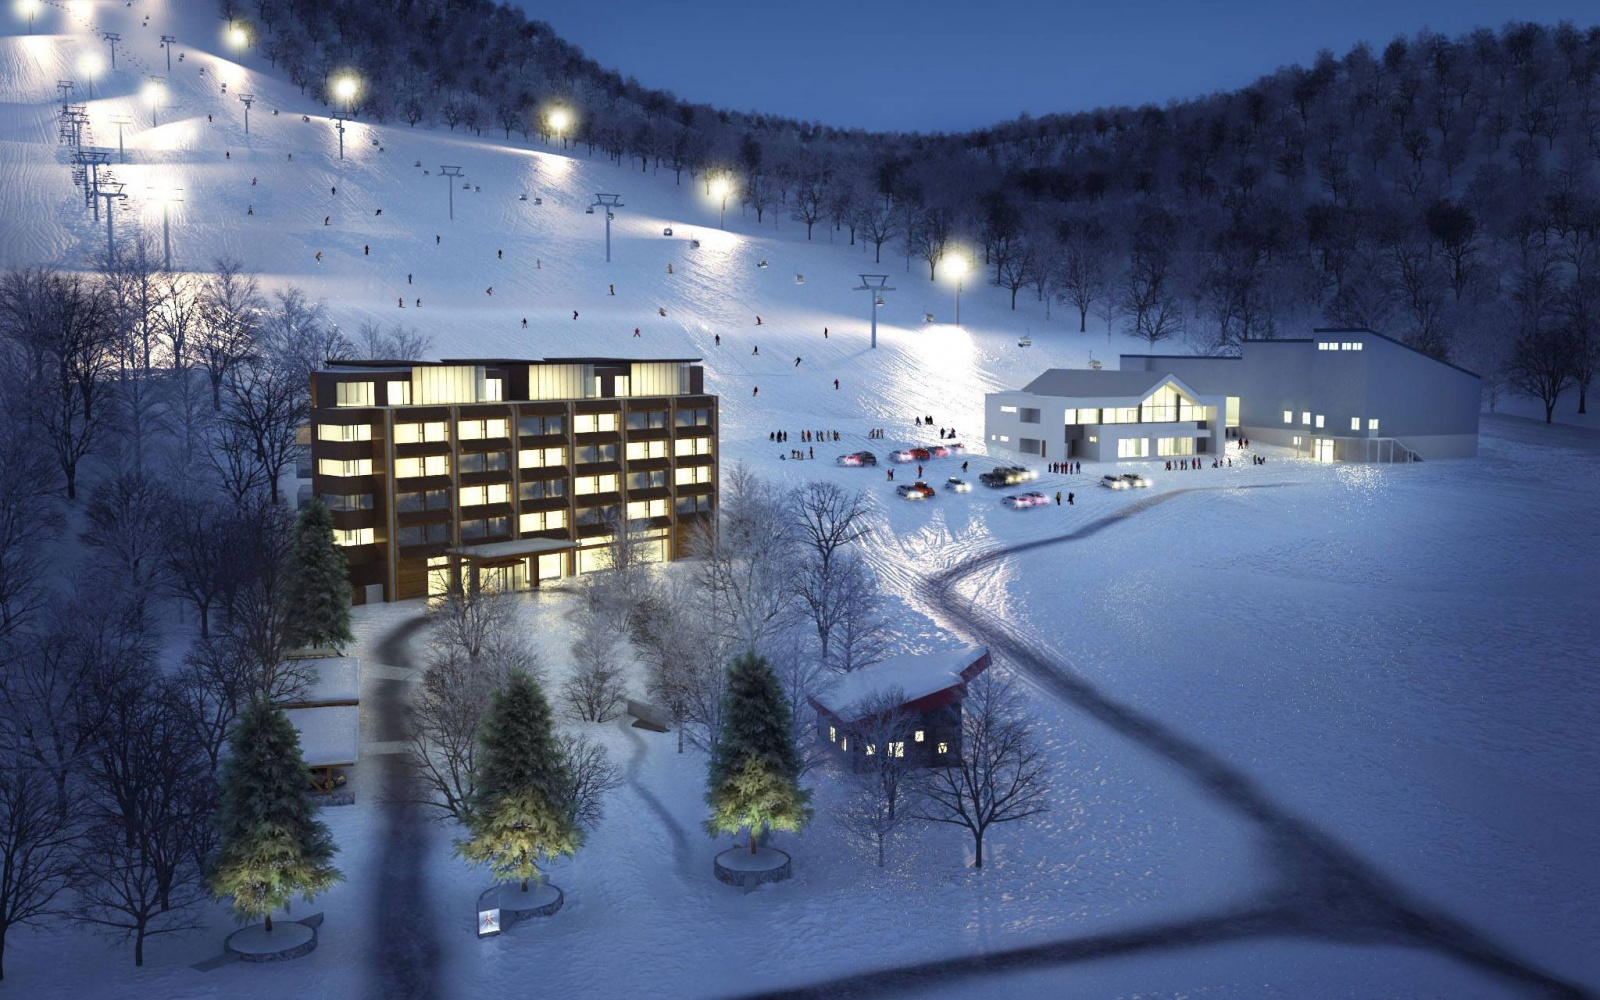 Niseko United Ski Resort at night in Hokkaido, Japan